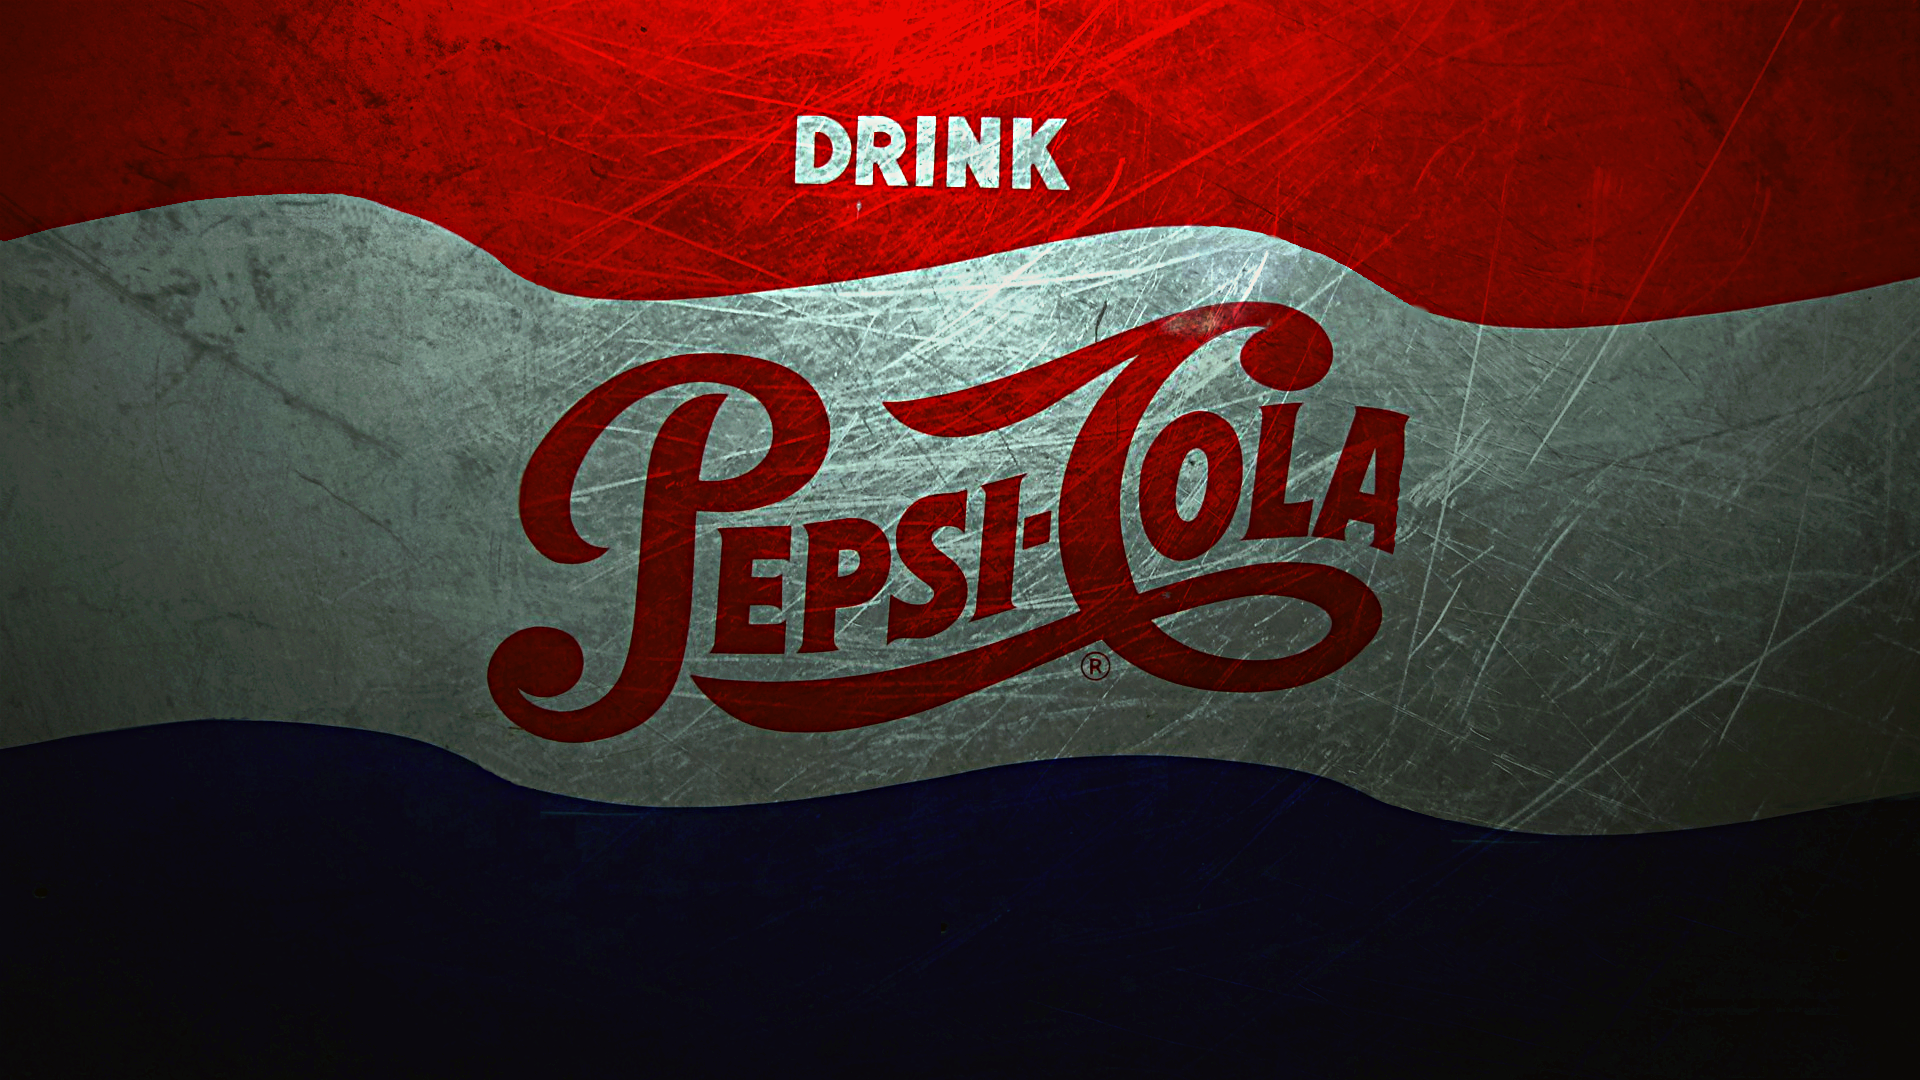 Products   Pepsi cola Wallpaper 1920x1080